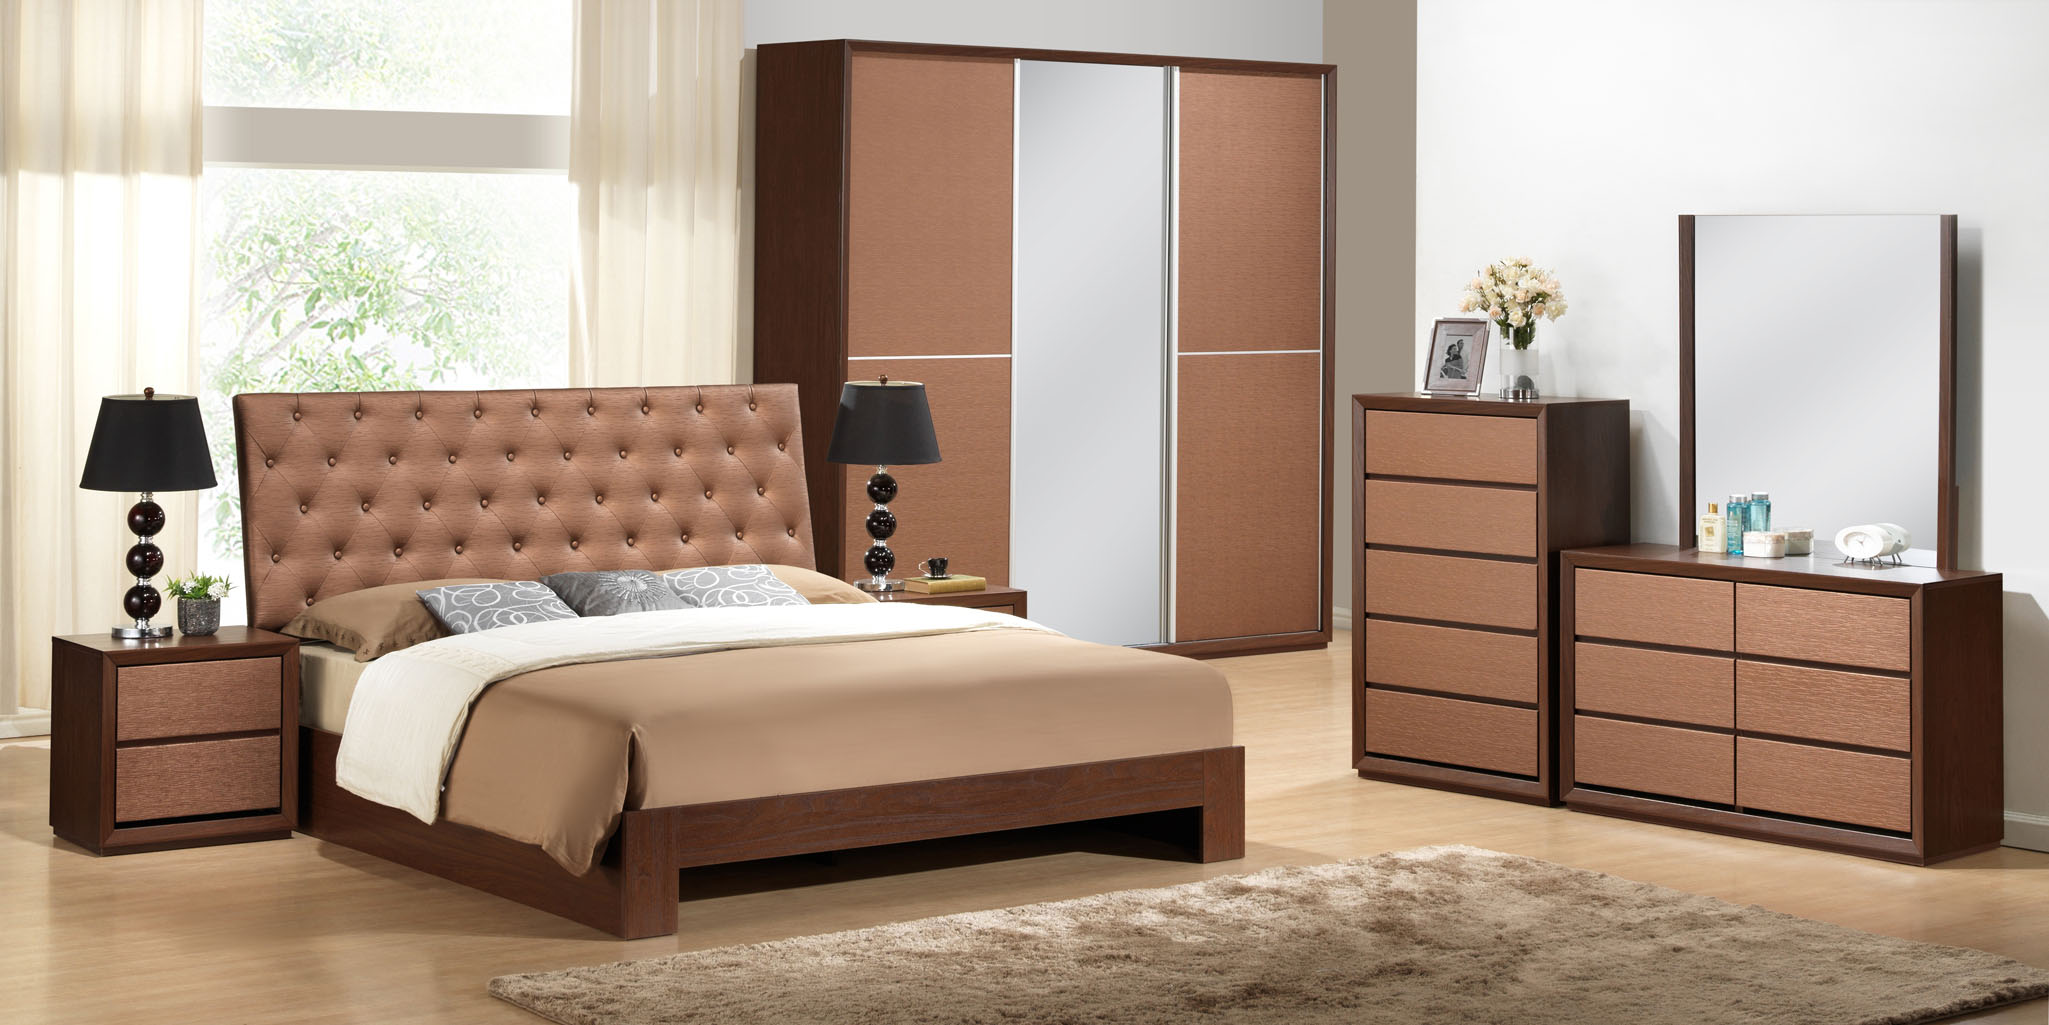 Quincy bedroom set fair production sdn bhd for Three room set design